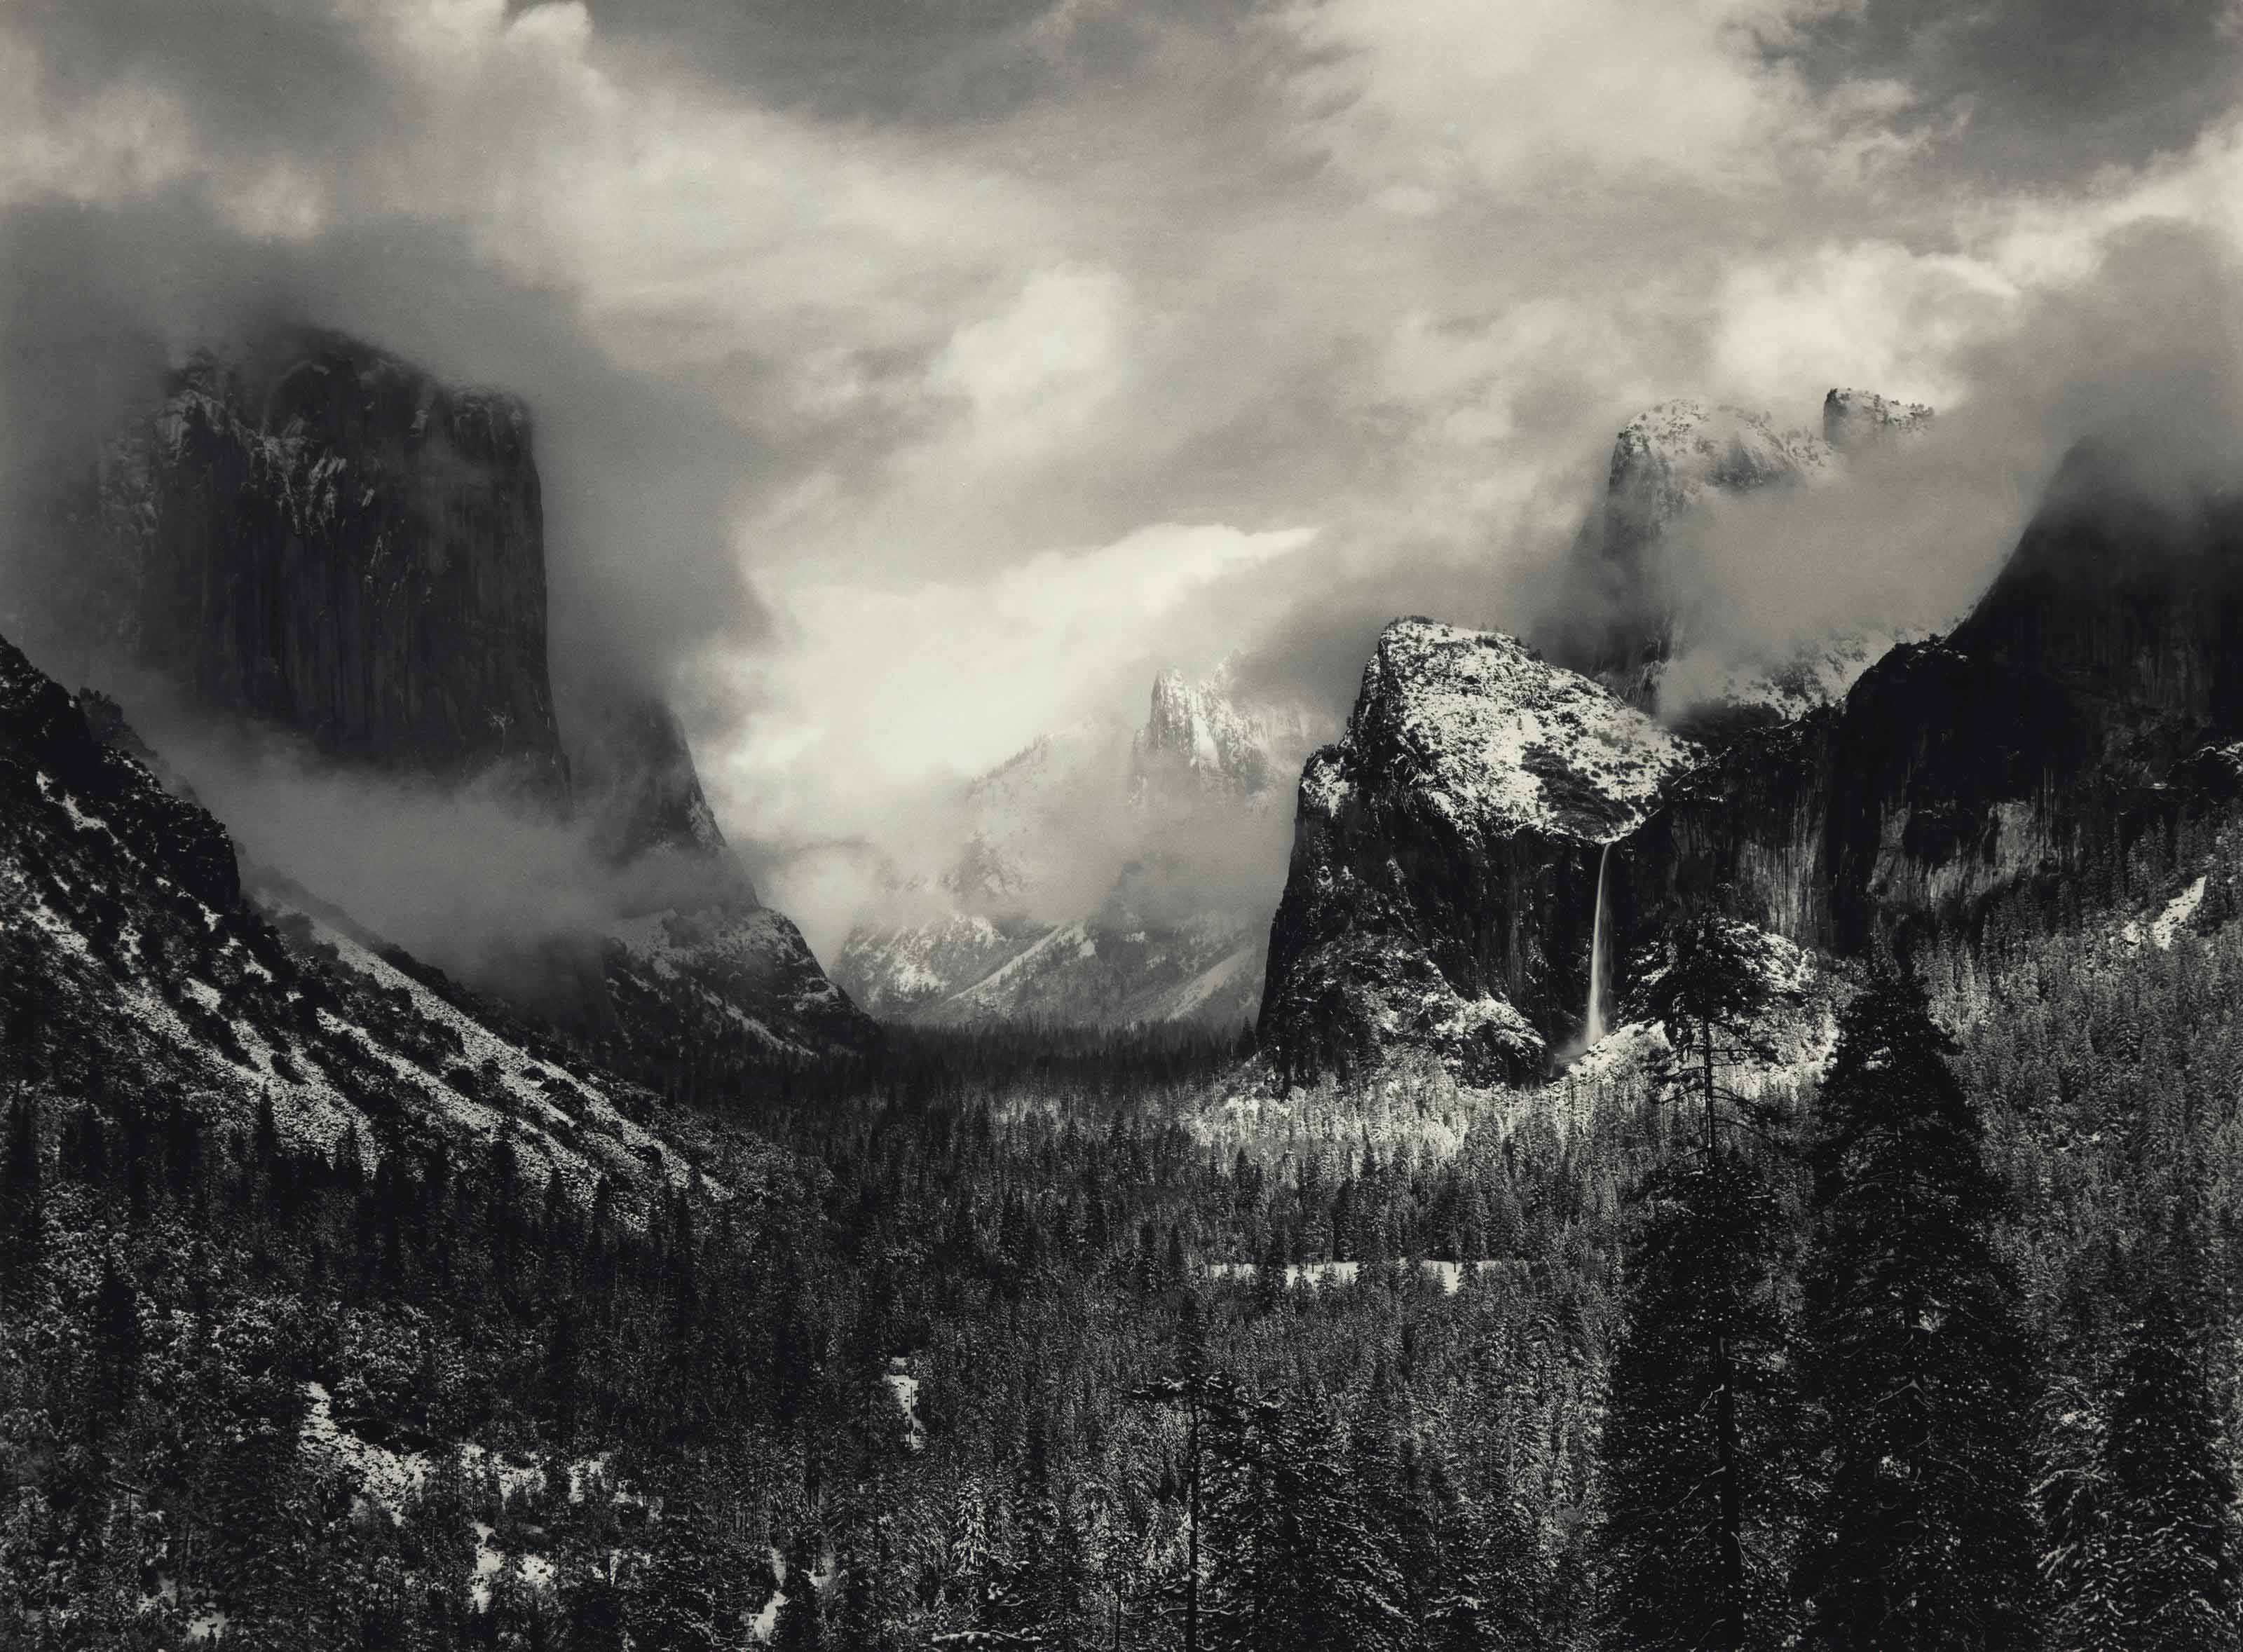 Clearing Winter Storm, Yosemite National Park, California, 1938